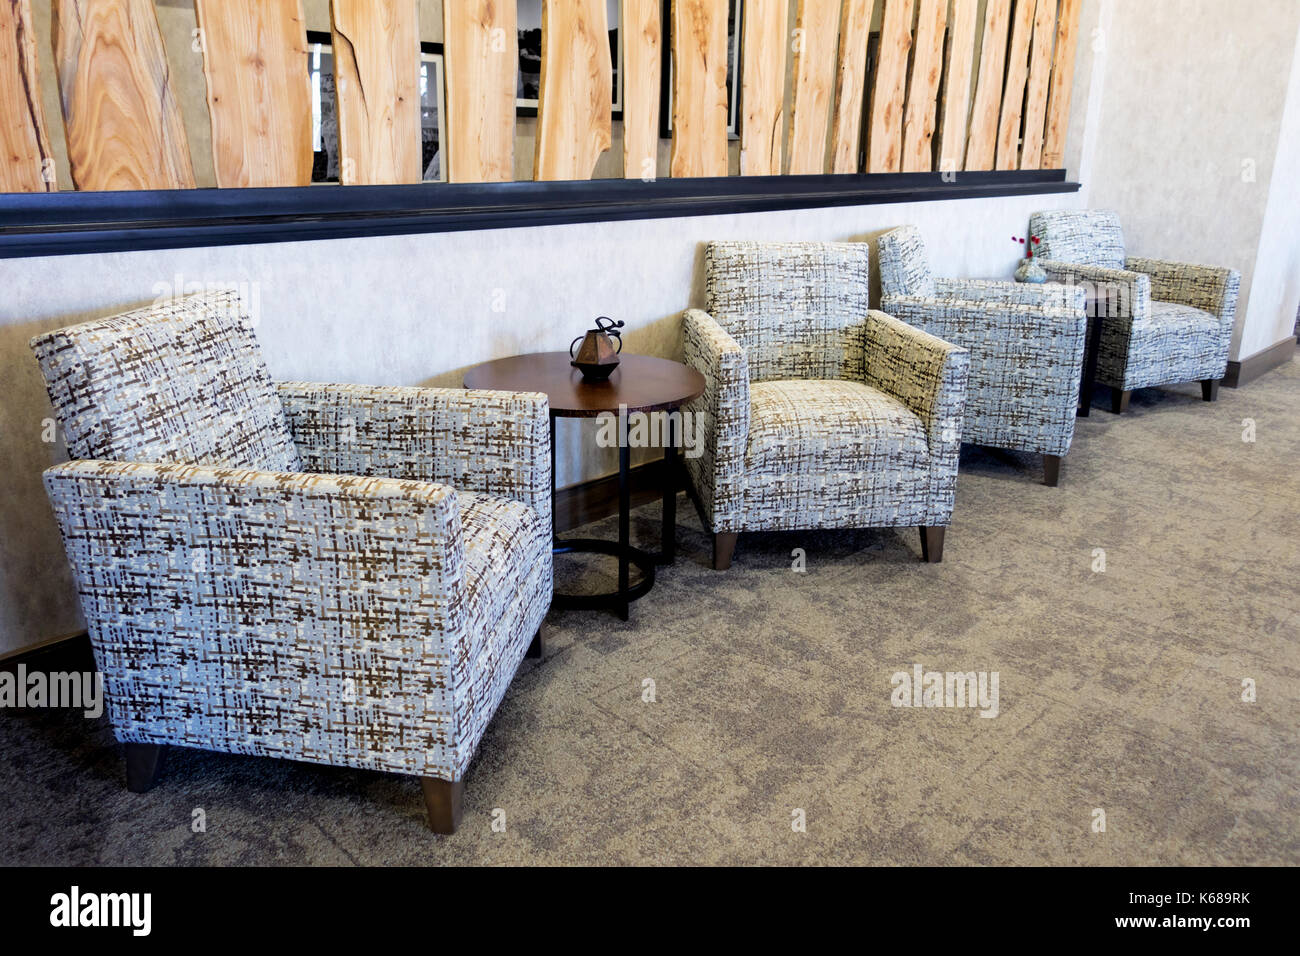 Patterned Armchairs In A Lobby.   Stock Image